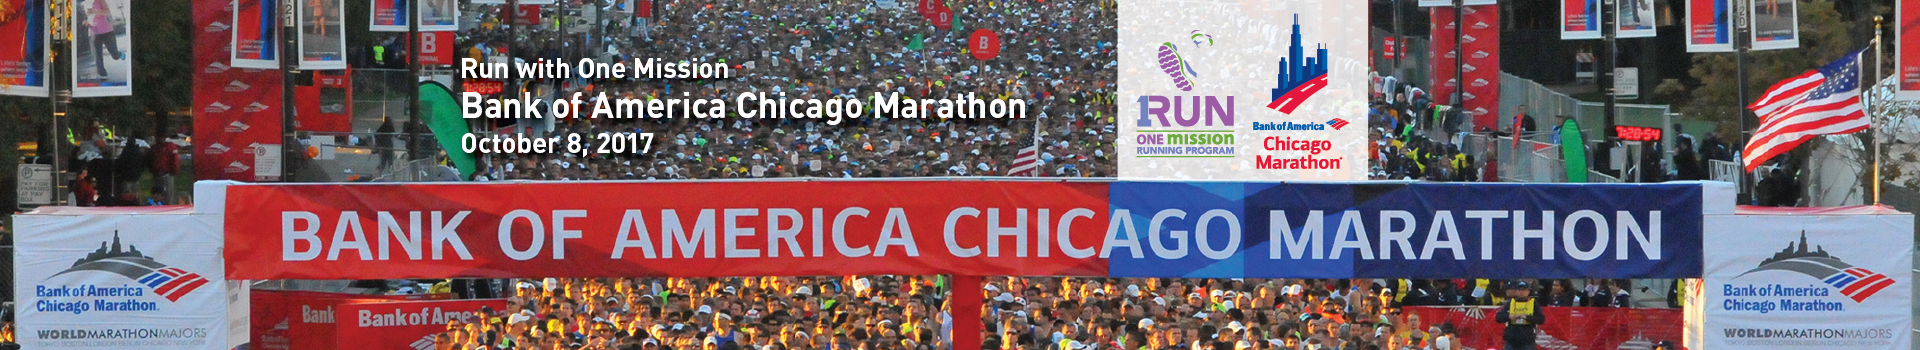 chicago_marathon_17b